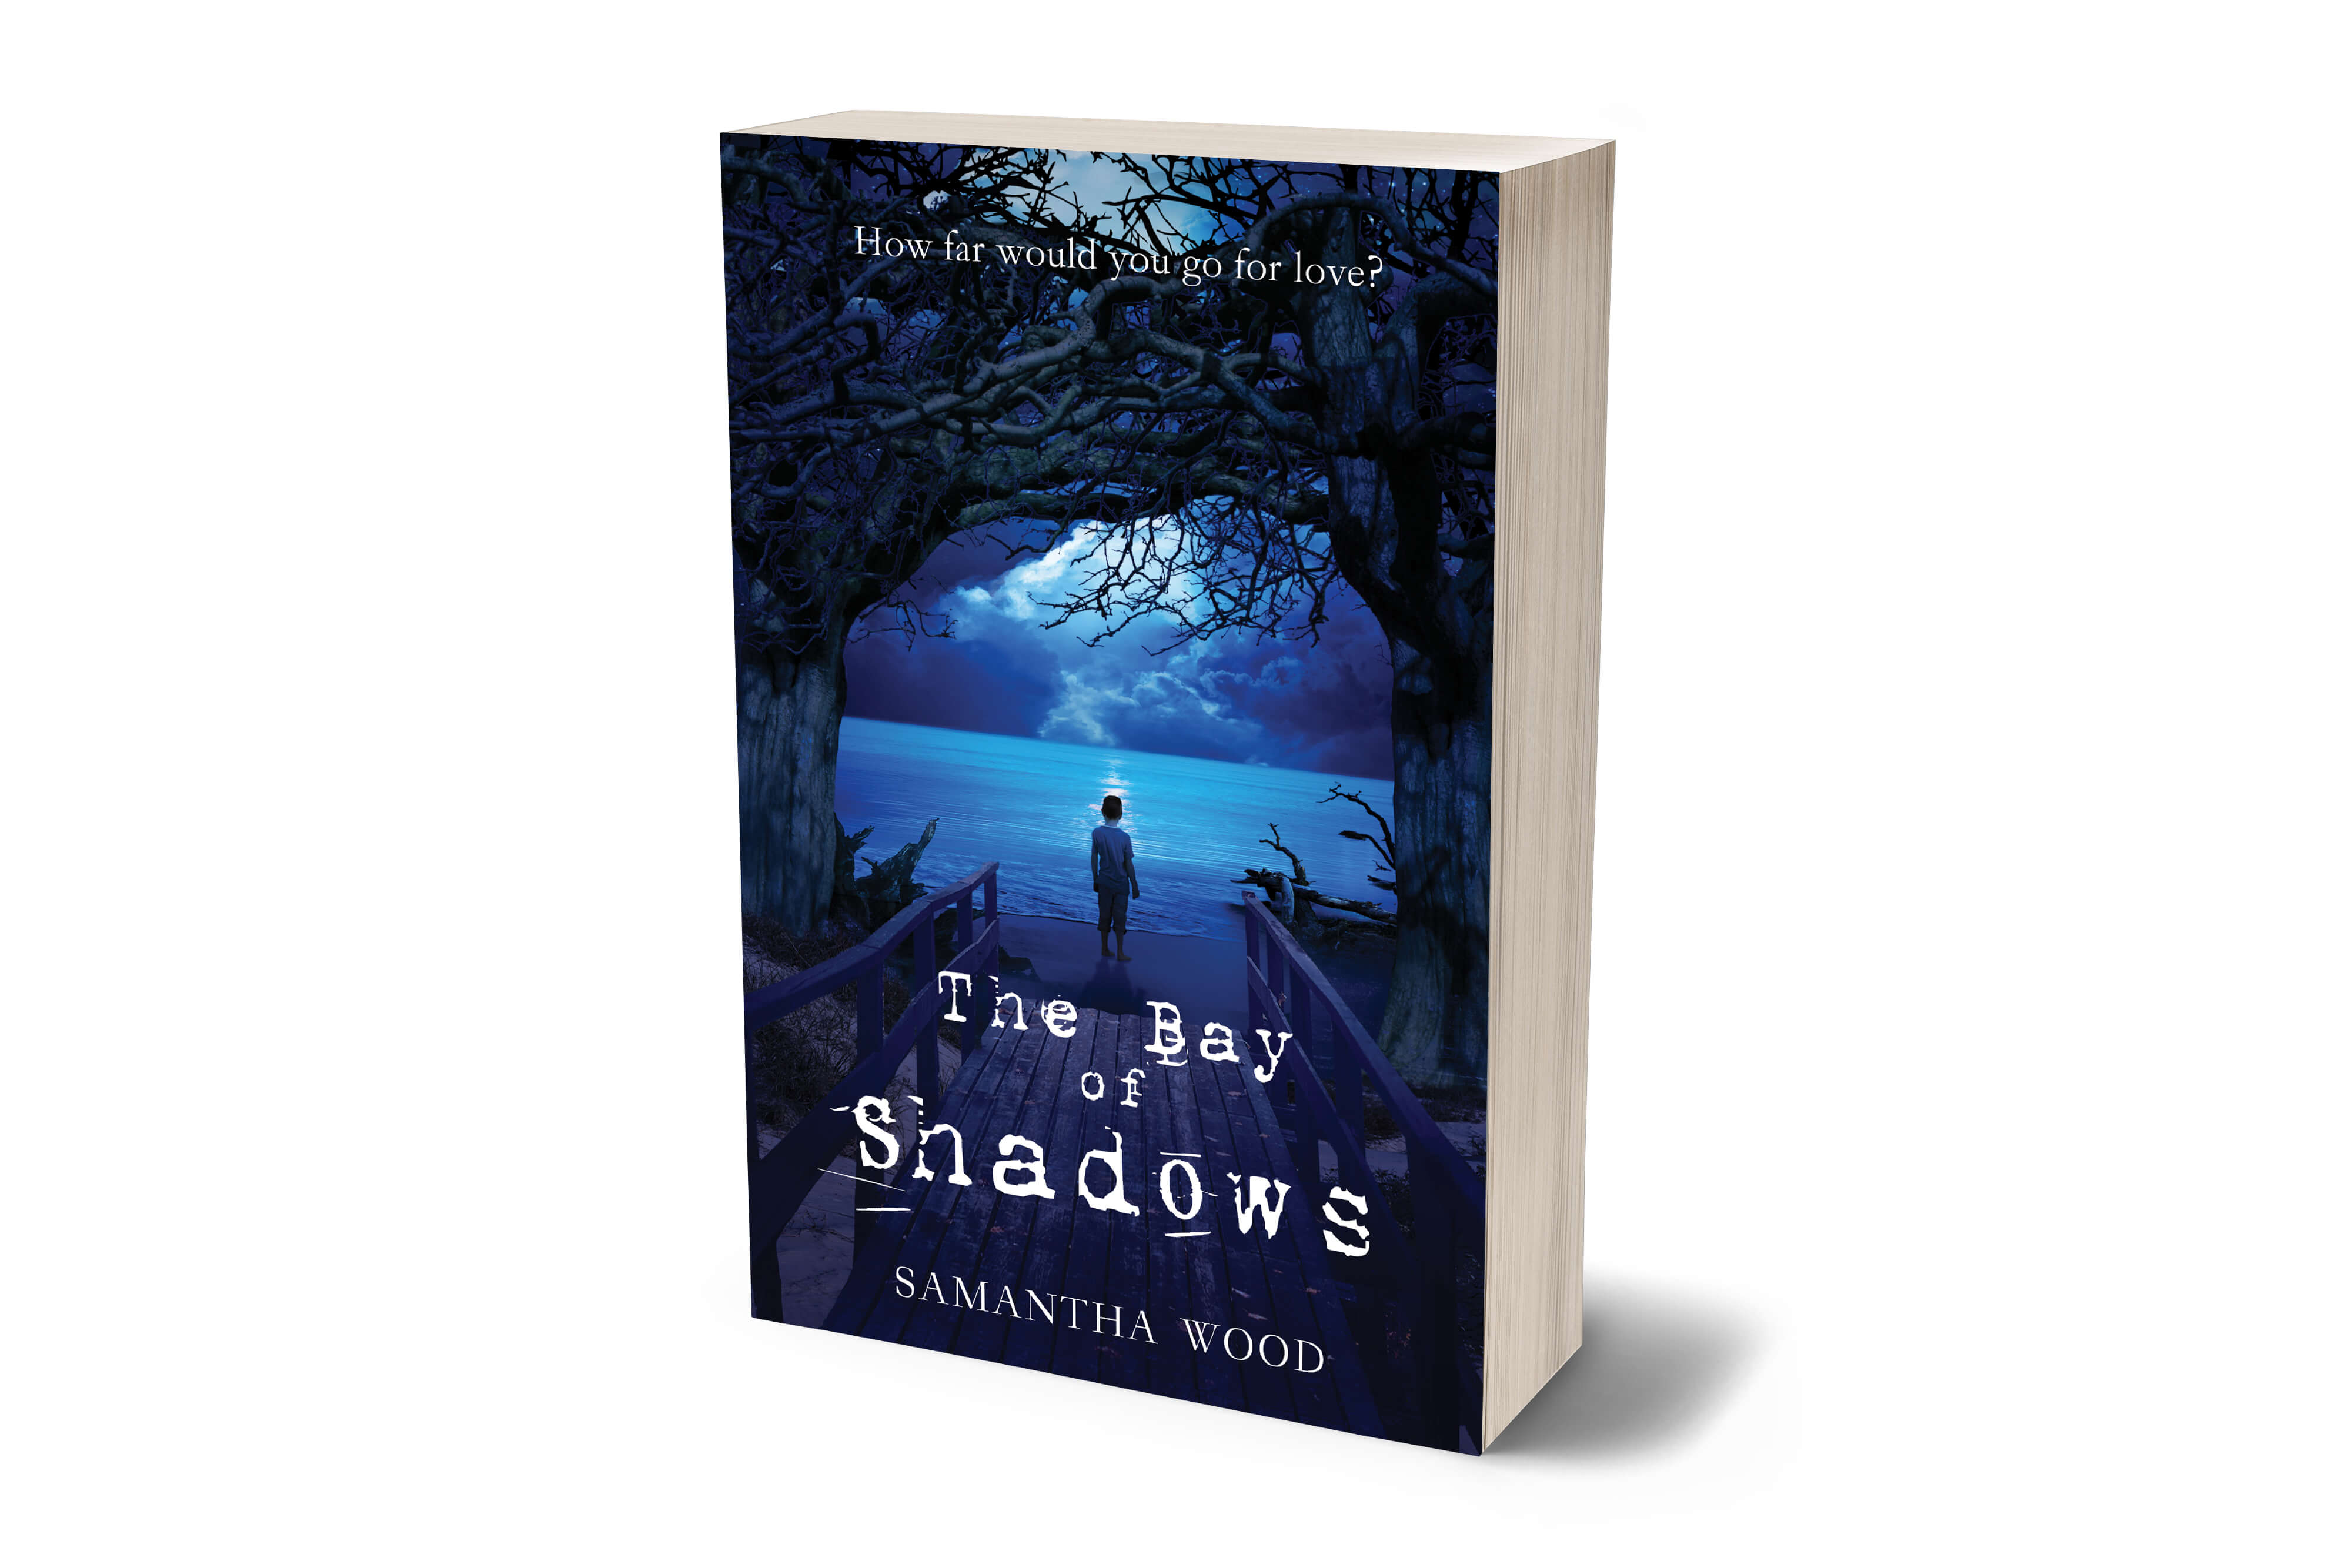 The Bay of Shadows, a novel by Samantha Wood